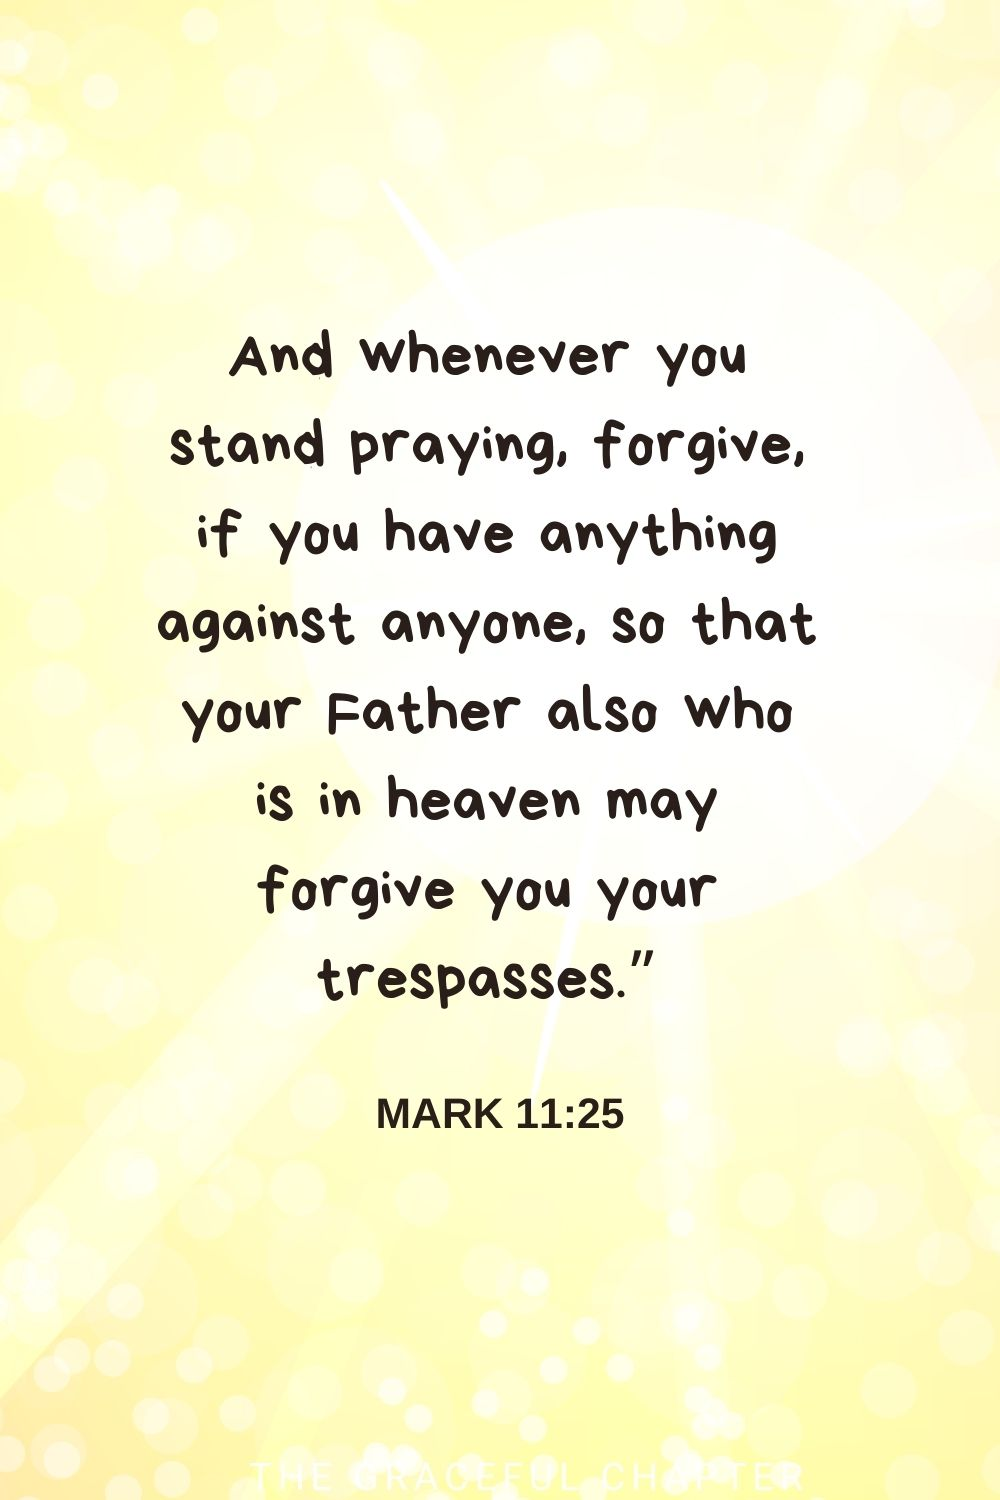 """And whenever you stand praying, forgive, if you have anything against anyone, so that your Father also who is in heaven may forgive you your trespasses."""" Mark 11:25"""